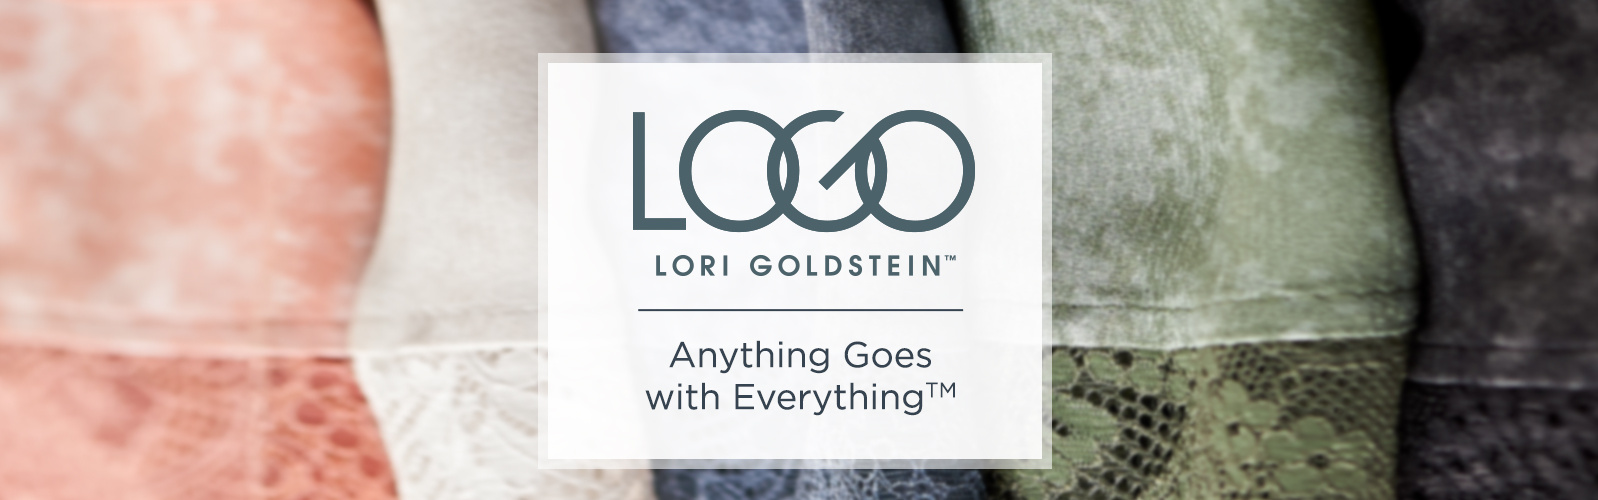 LOGO by Lori Goldstein - Anything Goes with Everything